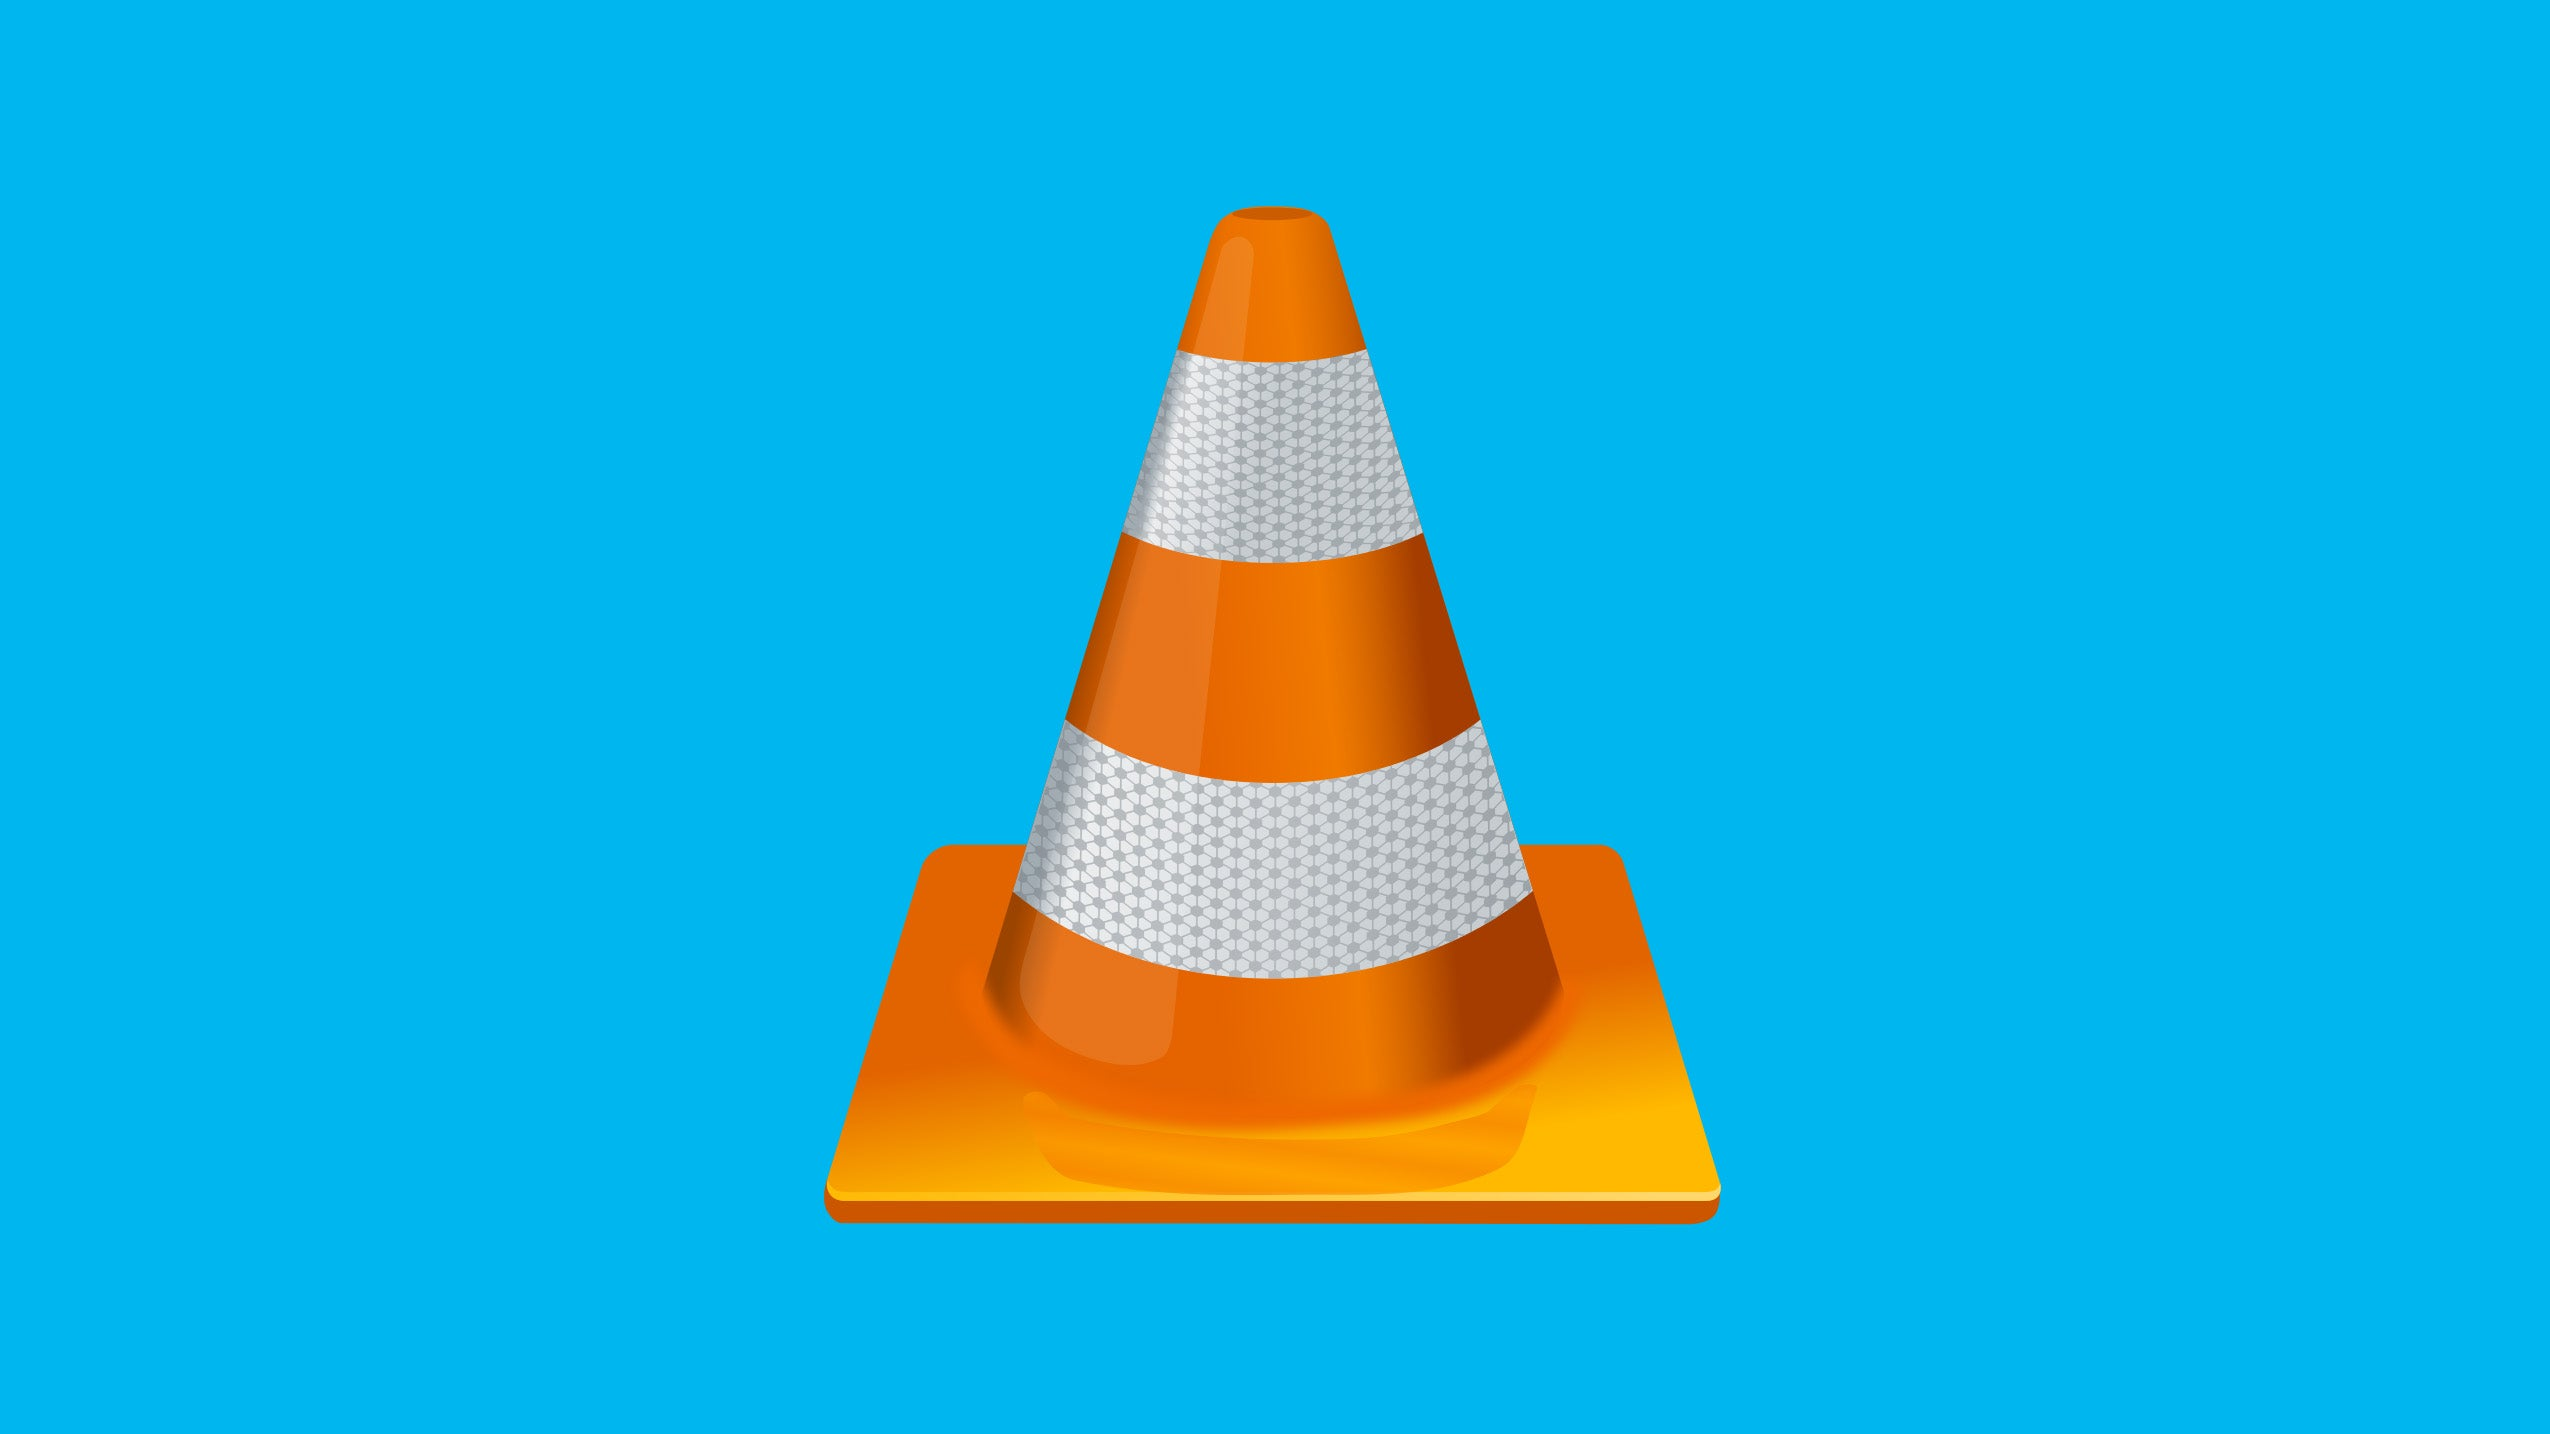 beta-release hell-yeah hololens videolan vlc vlc-media-player windows-10 xbox-one